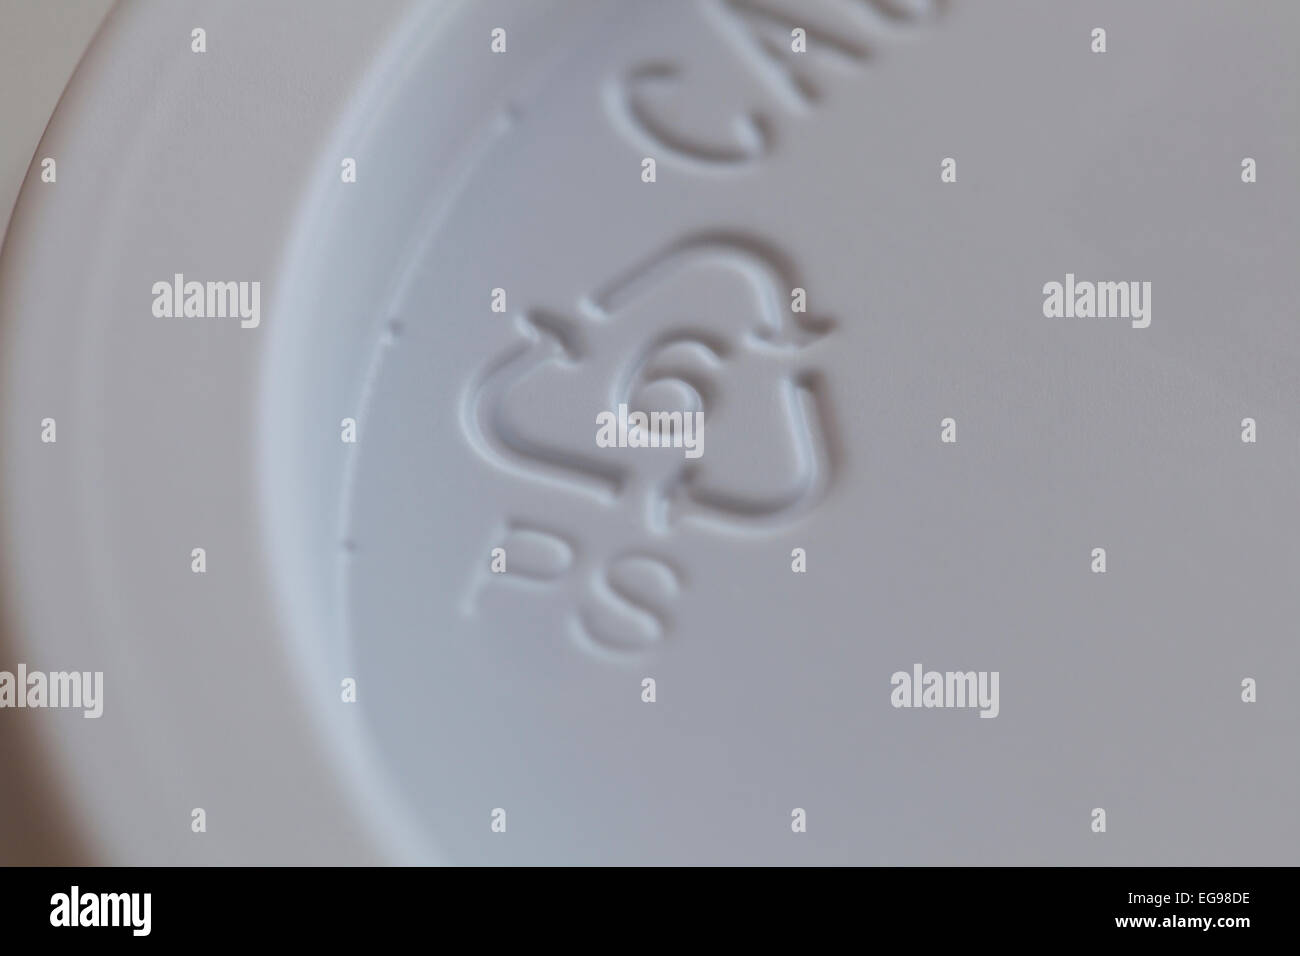 Number 6 recycling symbol on coffee cup lid - USA - Stock Image